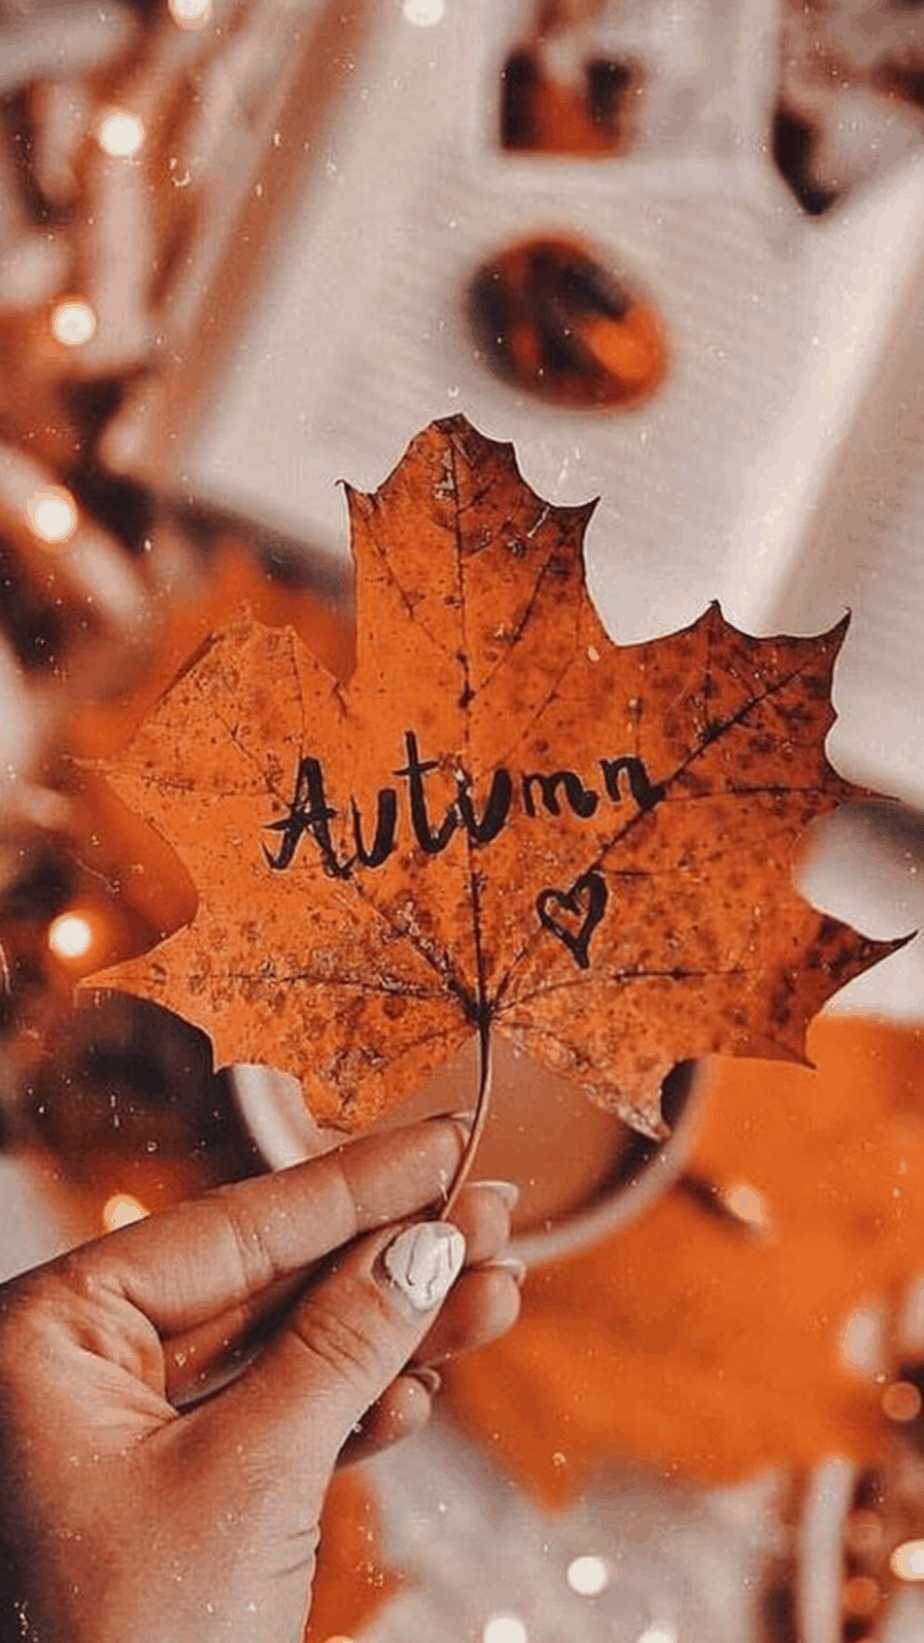 Autumn Wallpaper. You can always make your iPhone look aesthetic with cute wallpapers, these 40 beautiful and aesthetic autumn fall wallpapers for your iPhone will make you feel that autumnal fall vibes.